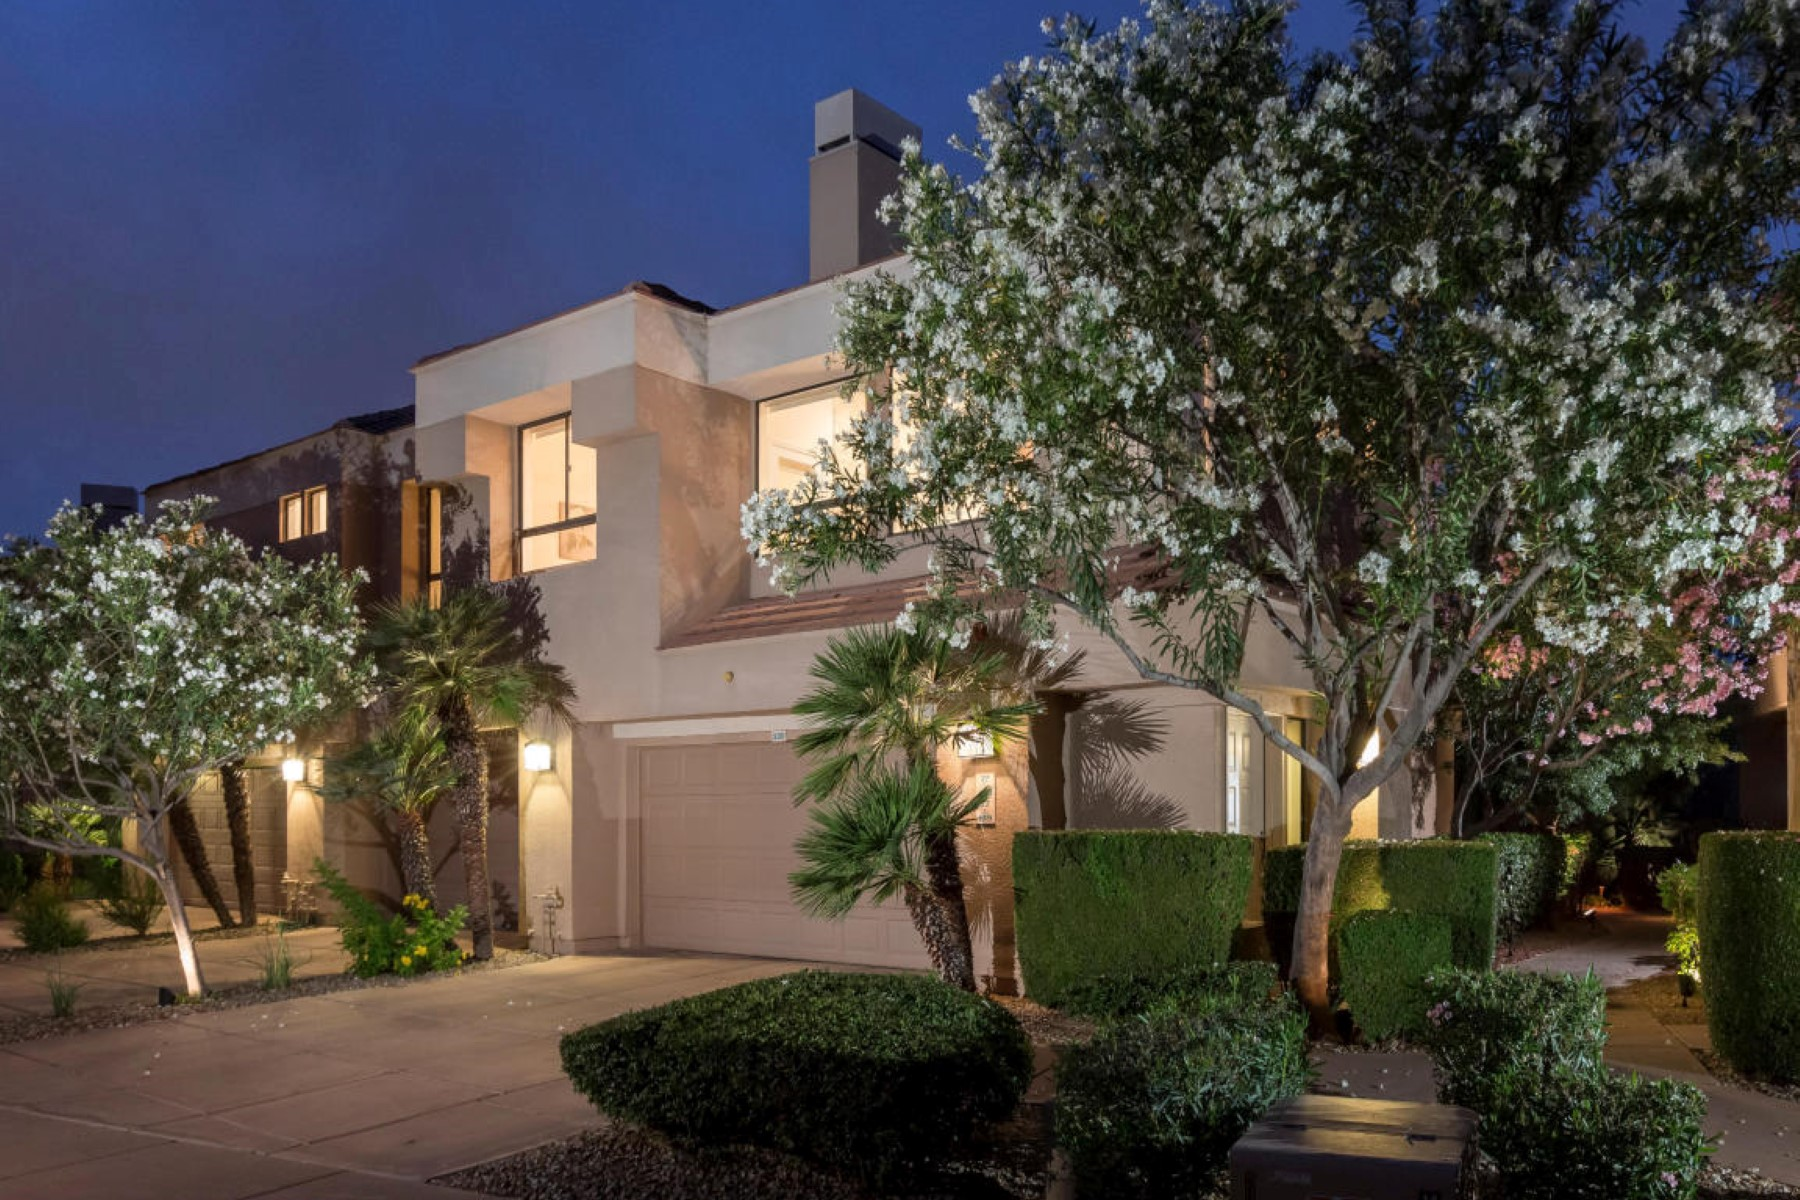 Căn hộ vì Bán tại Remodel Condo in sought after and luxurious Gainey Ranch Scottsdale 7222 E Gainey Ranch Rd #239 Scottsdale, Arizona 85258 Hoa Kỳ